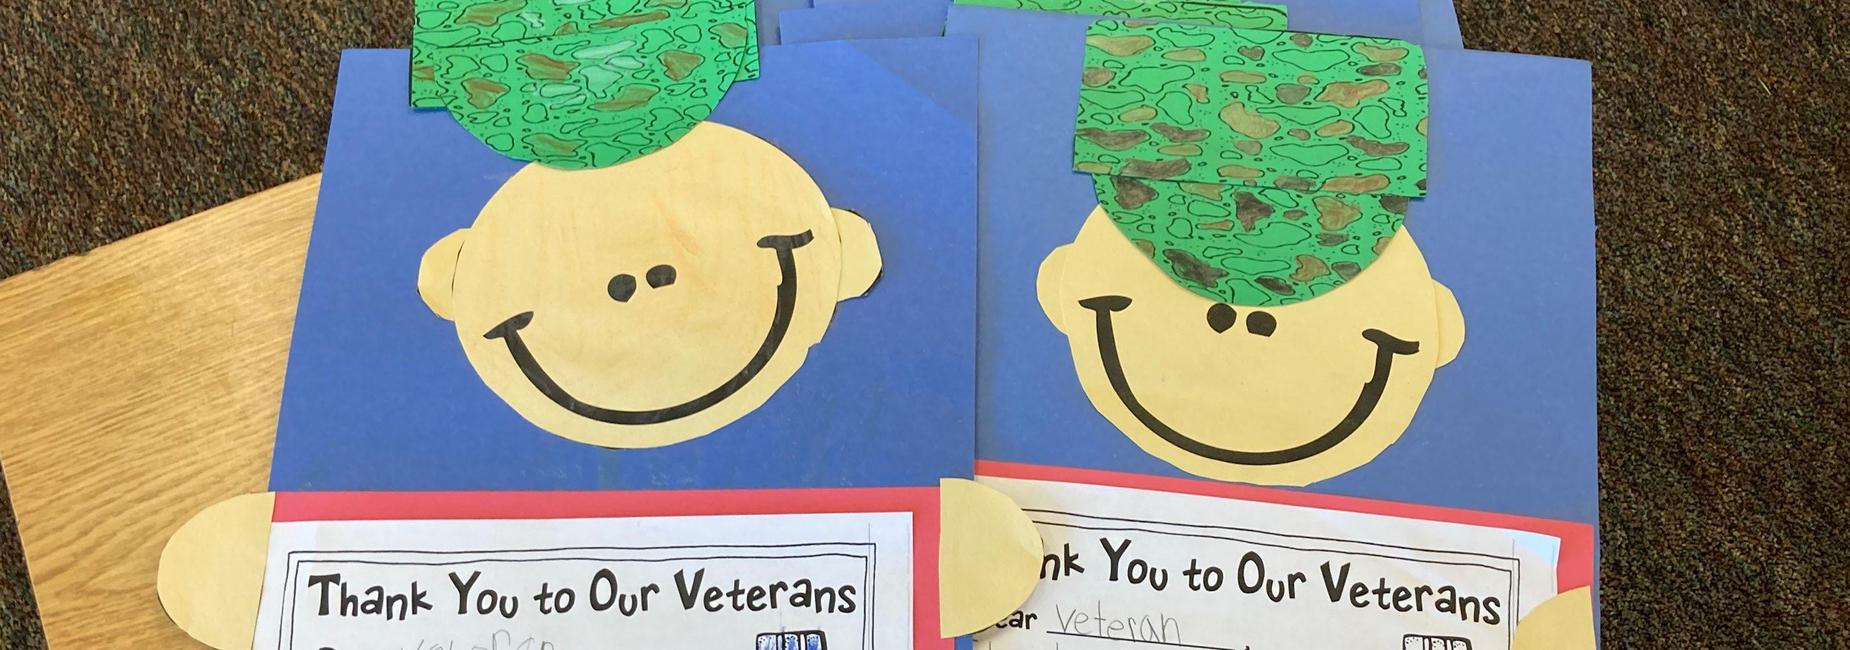 Student Artwork- Smiling face with military hat